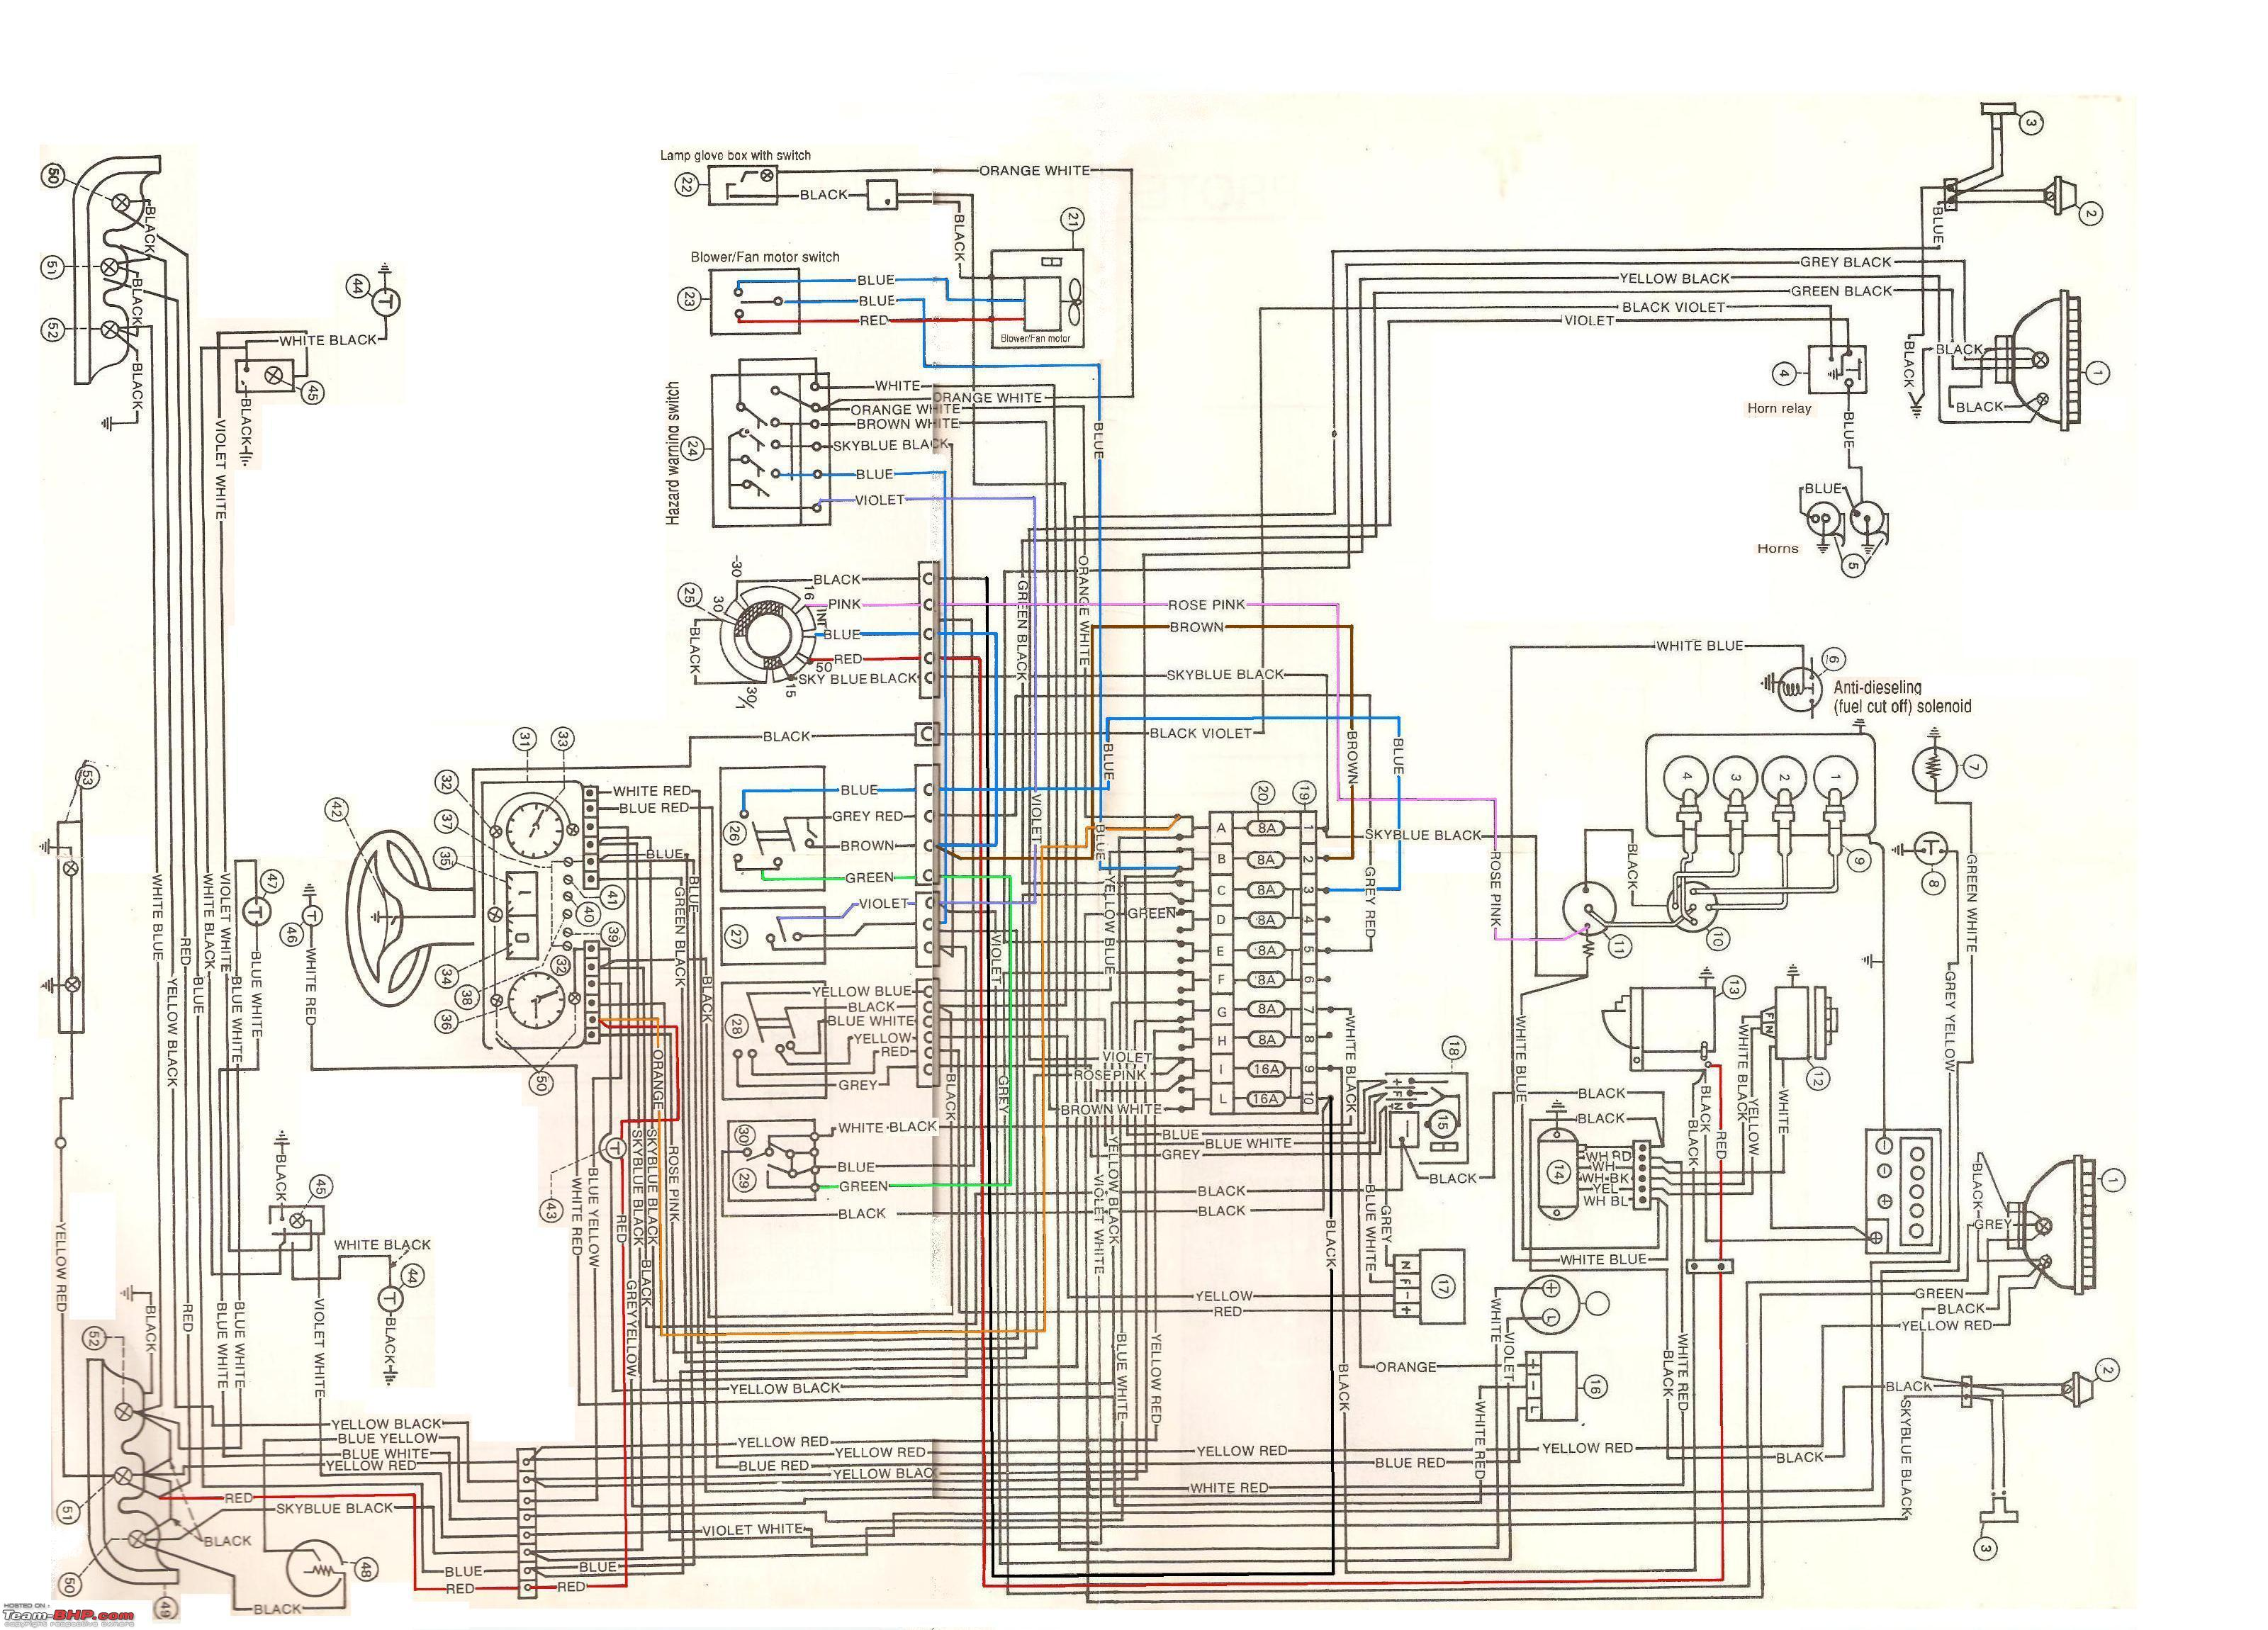 Cool workhorse chassis wiring diagram photos the best electrical workhorse 7 wiring diagram free hl electric motors wiring diagram asfbconference2016 Gallery